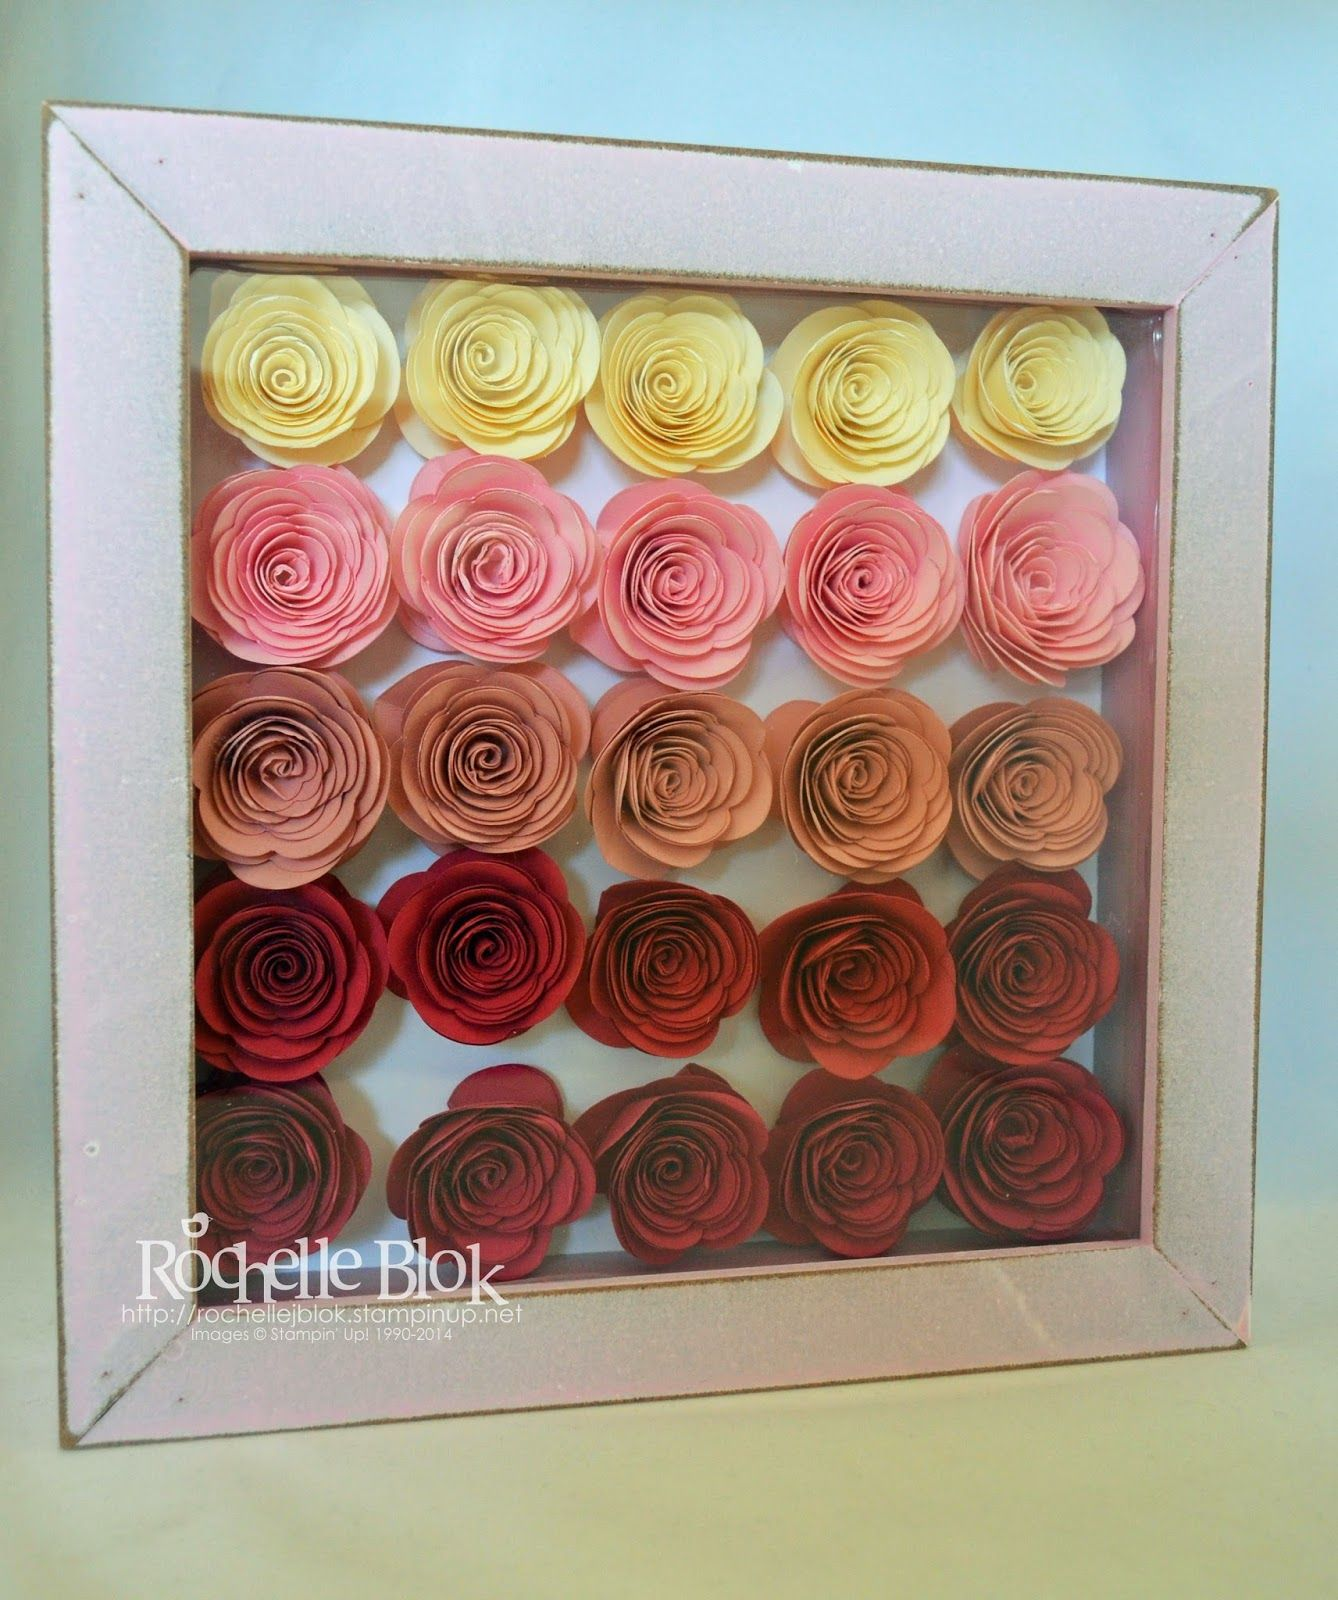 The St&ing Blok St&inu0027 Up! Spiral Flower Die Shadow Box Frame By Rochelle & The Stamping Blok: Stampinu0027 Up! Spiral Flower Die Shadow Box Frame ... Aboutintivar.Com